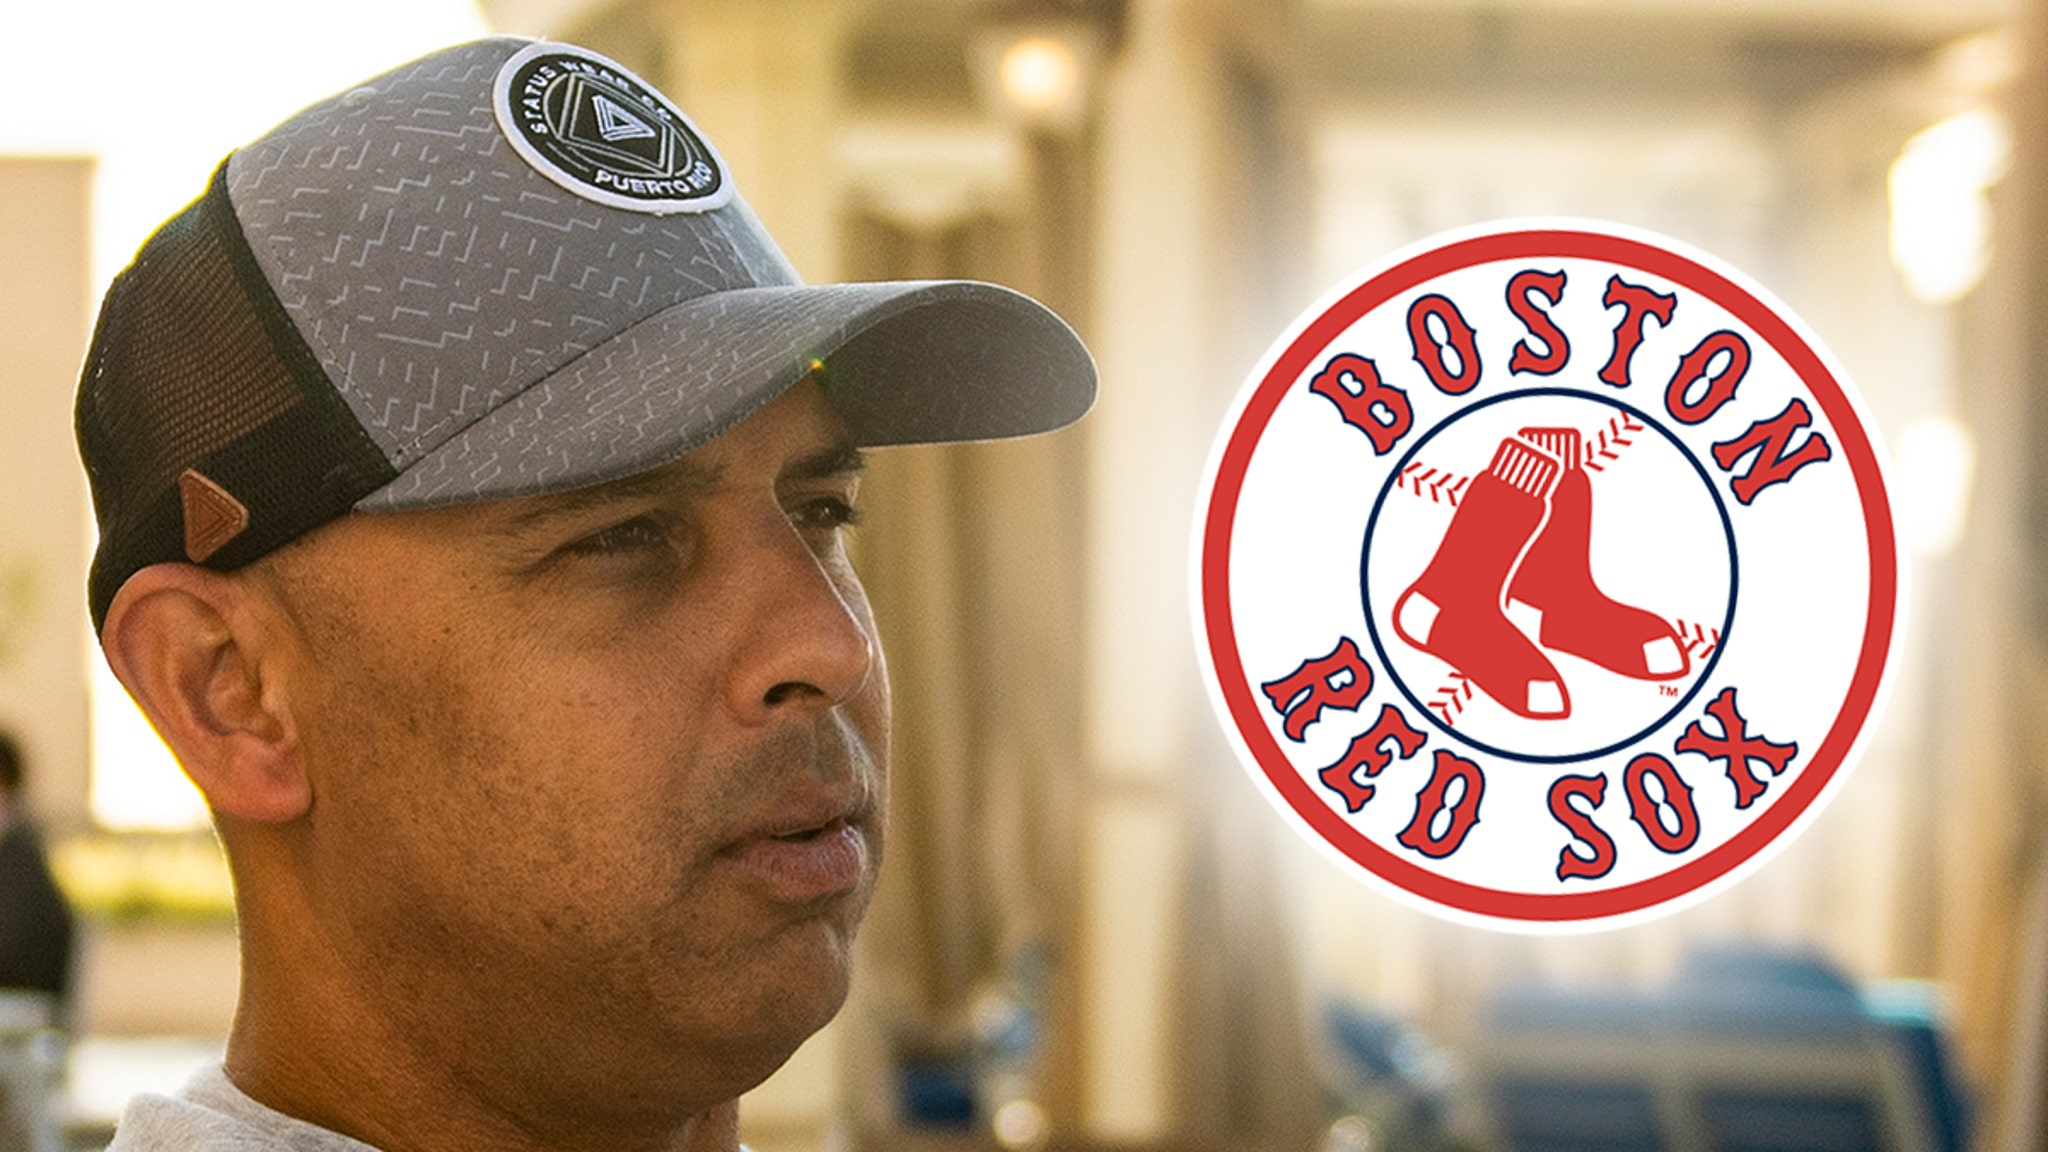 Red Sox Part Ways With Alex Cora After Cheating Scandal